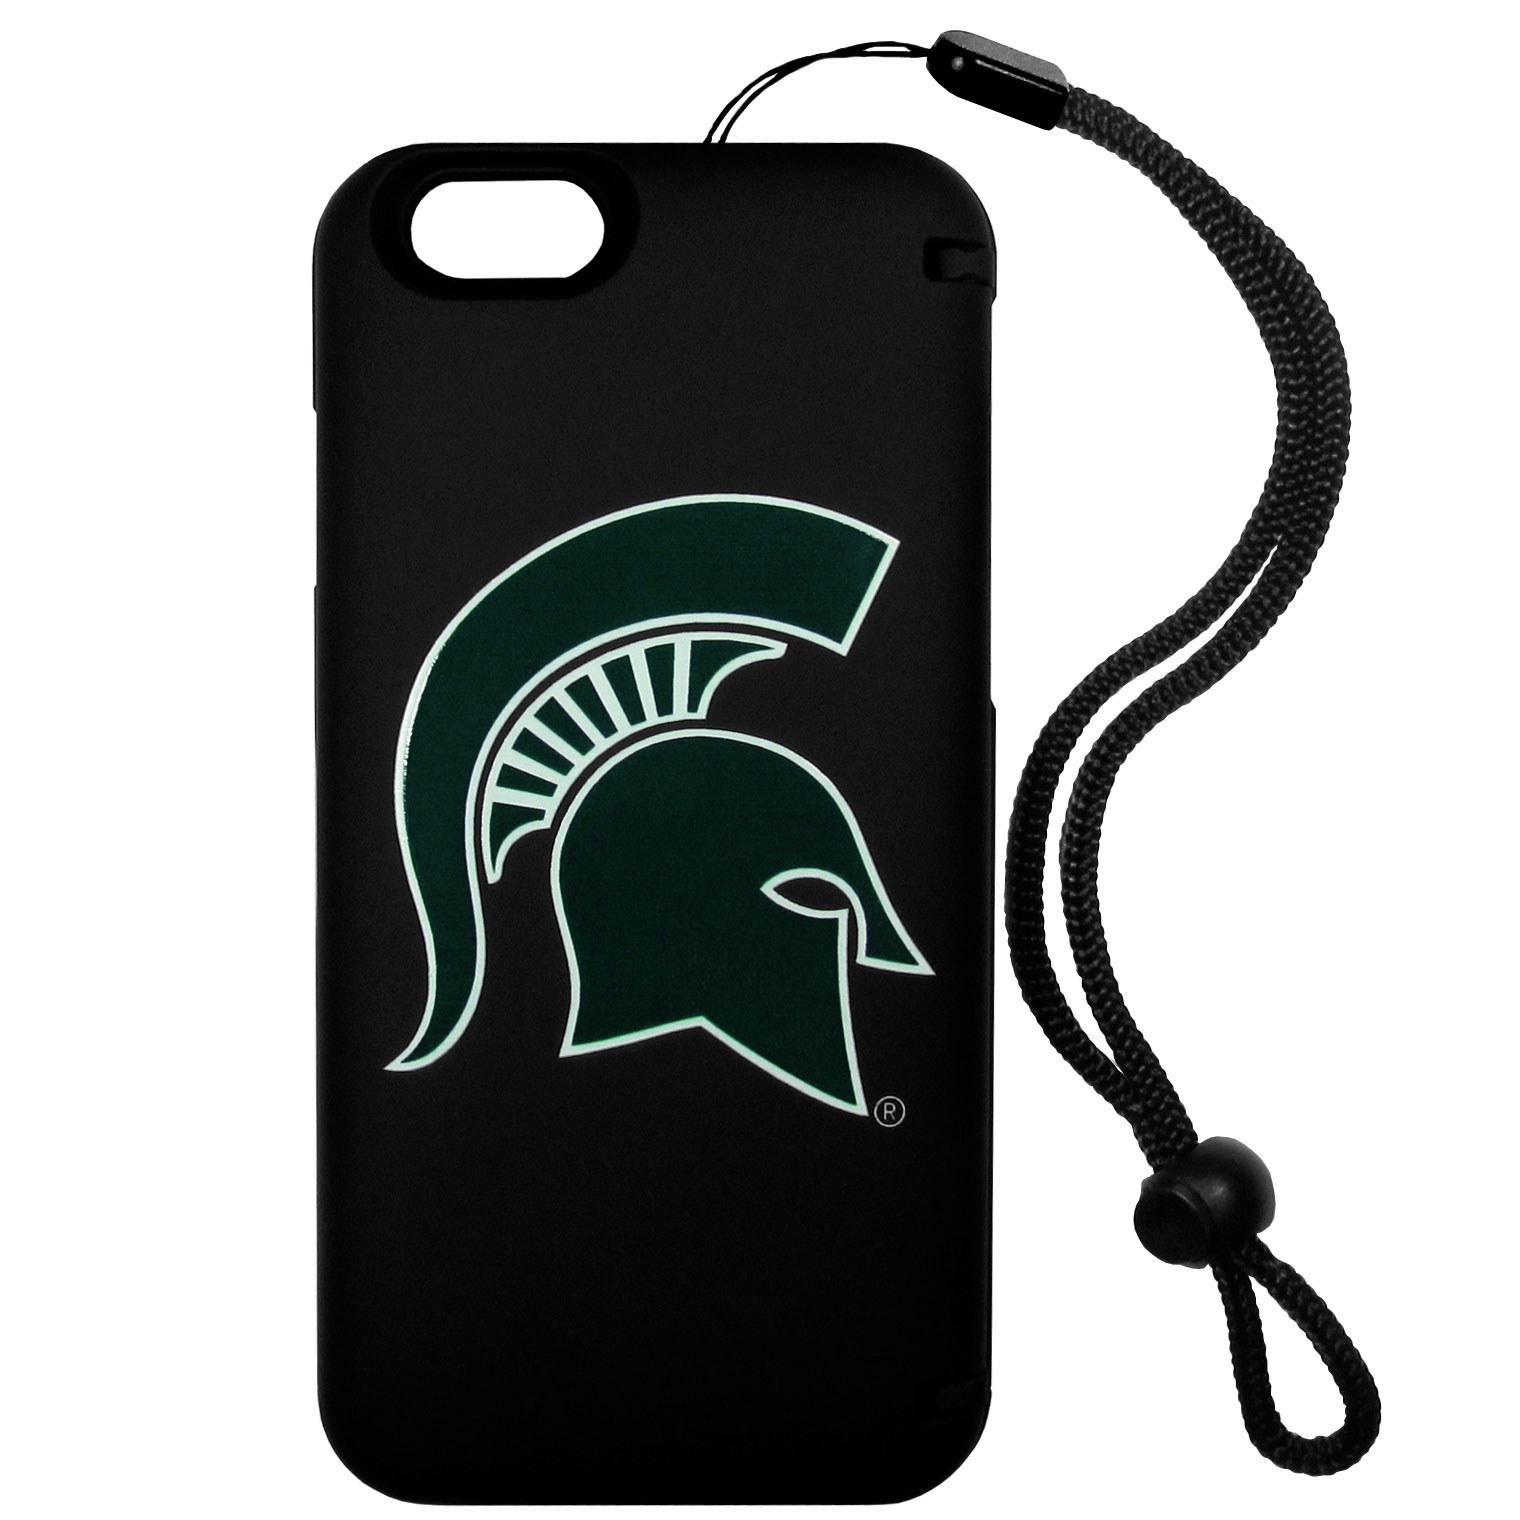 Michigan St. Spartans iPhone 6 Everything Case - This case really does have everything but the kitchen sink! The hidden compartment lets you keep your cards, money and tickets to the big game safe and secure and has a compact mirror so you can make sure your game face is ready to go. It also comes with a kickstand to make chatting and watching videos a breeze. The wrist strap allows you to travel with ease with your everything case. If that's not enough, it also comes with the Michigan St. Spartans logo printed in expert detail on the front.